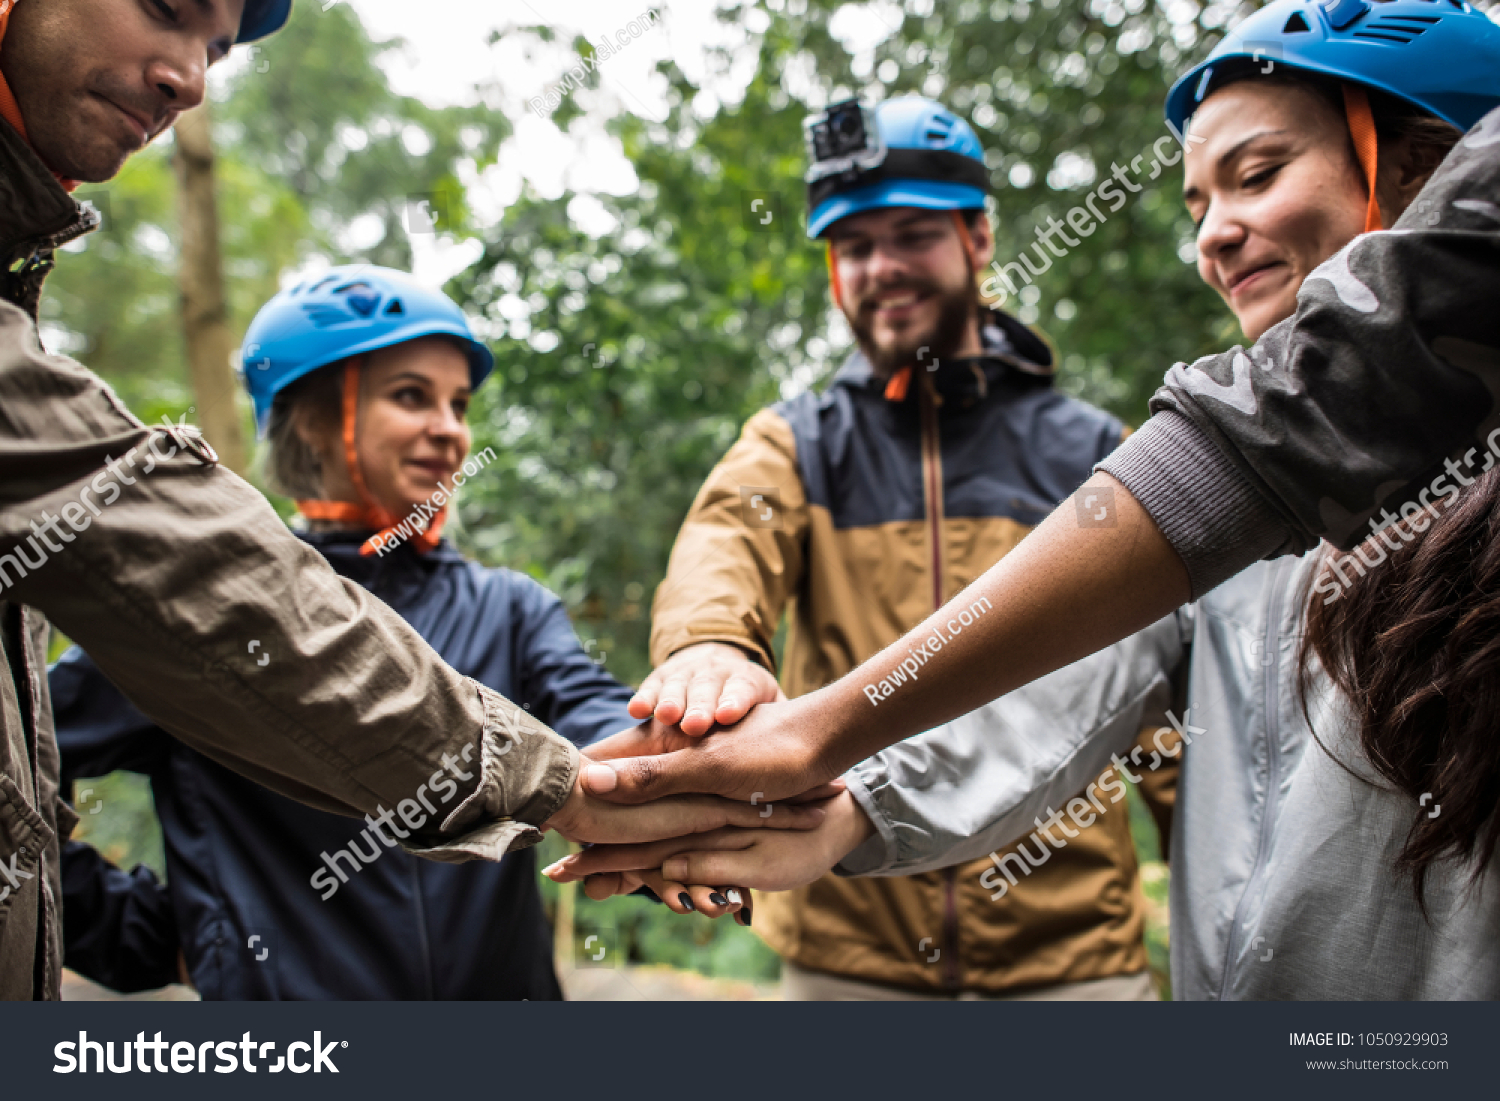 Team building outdoor in the forest #1050929903